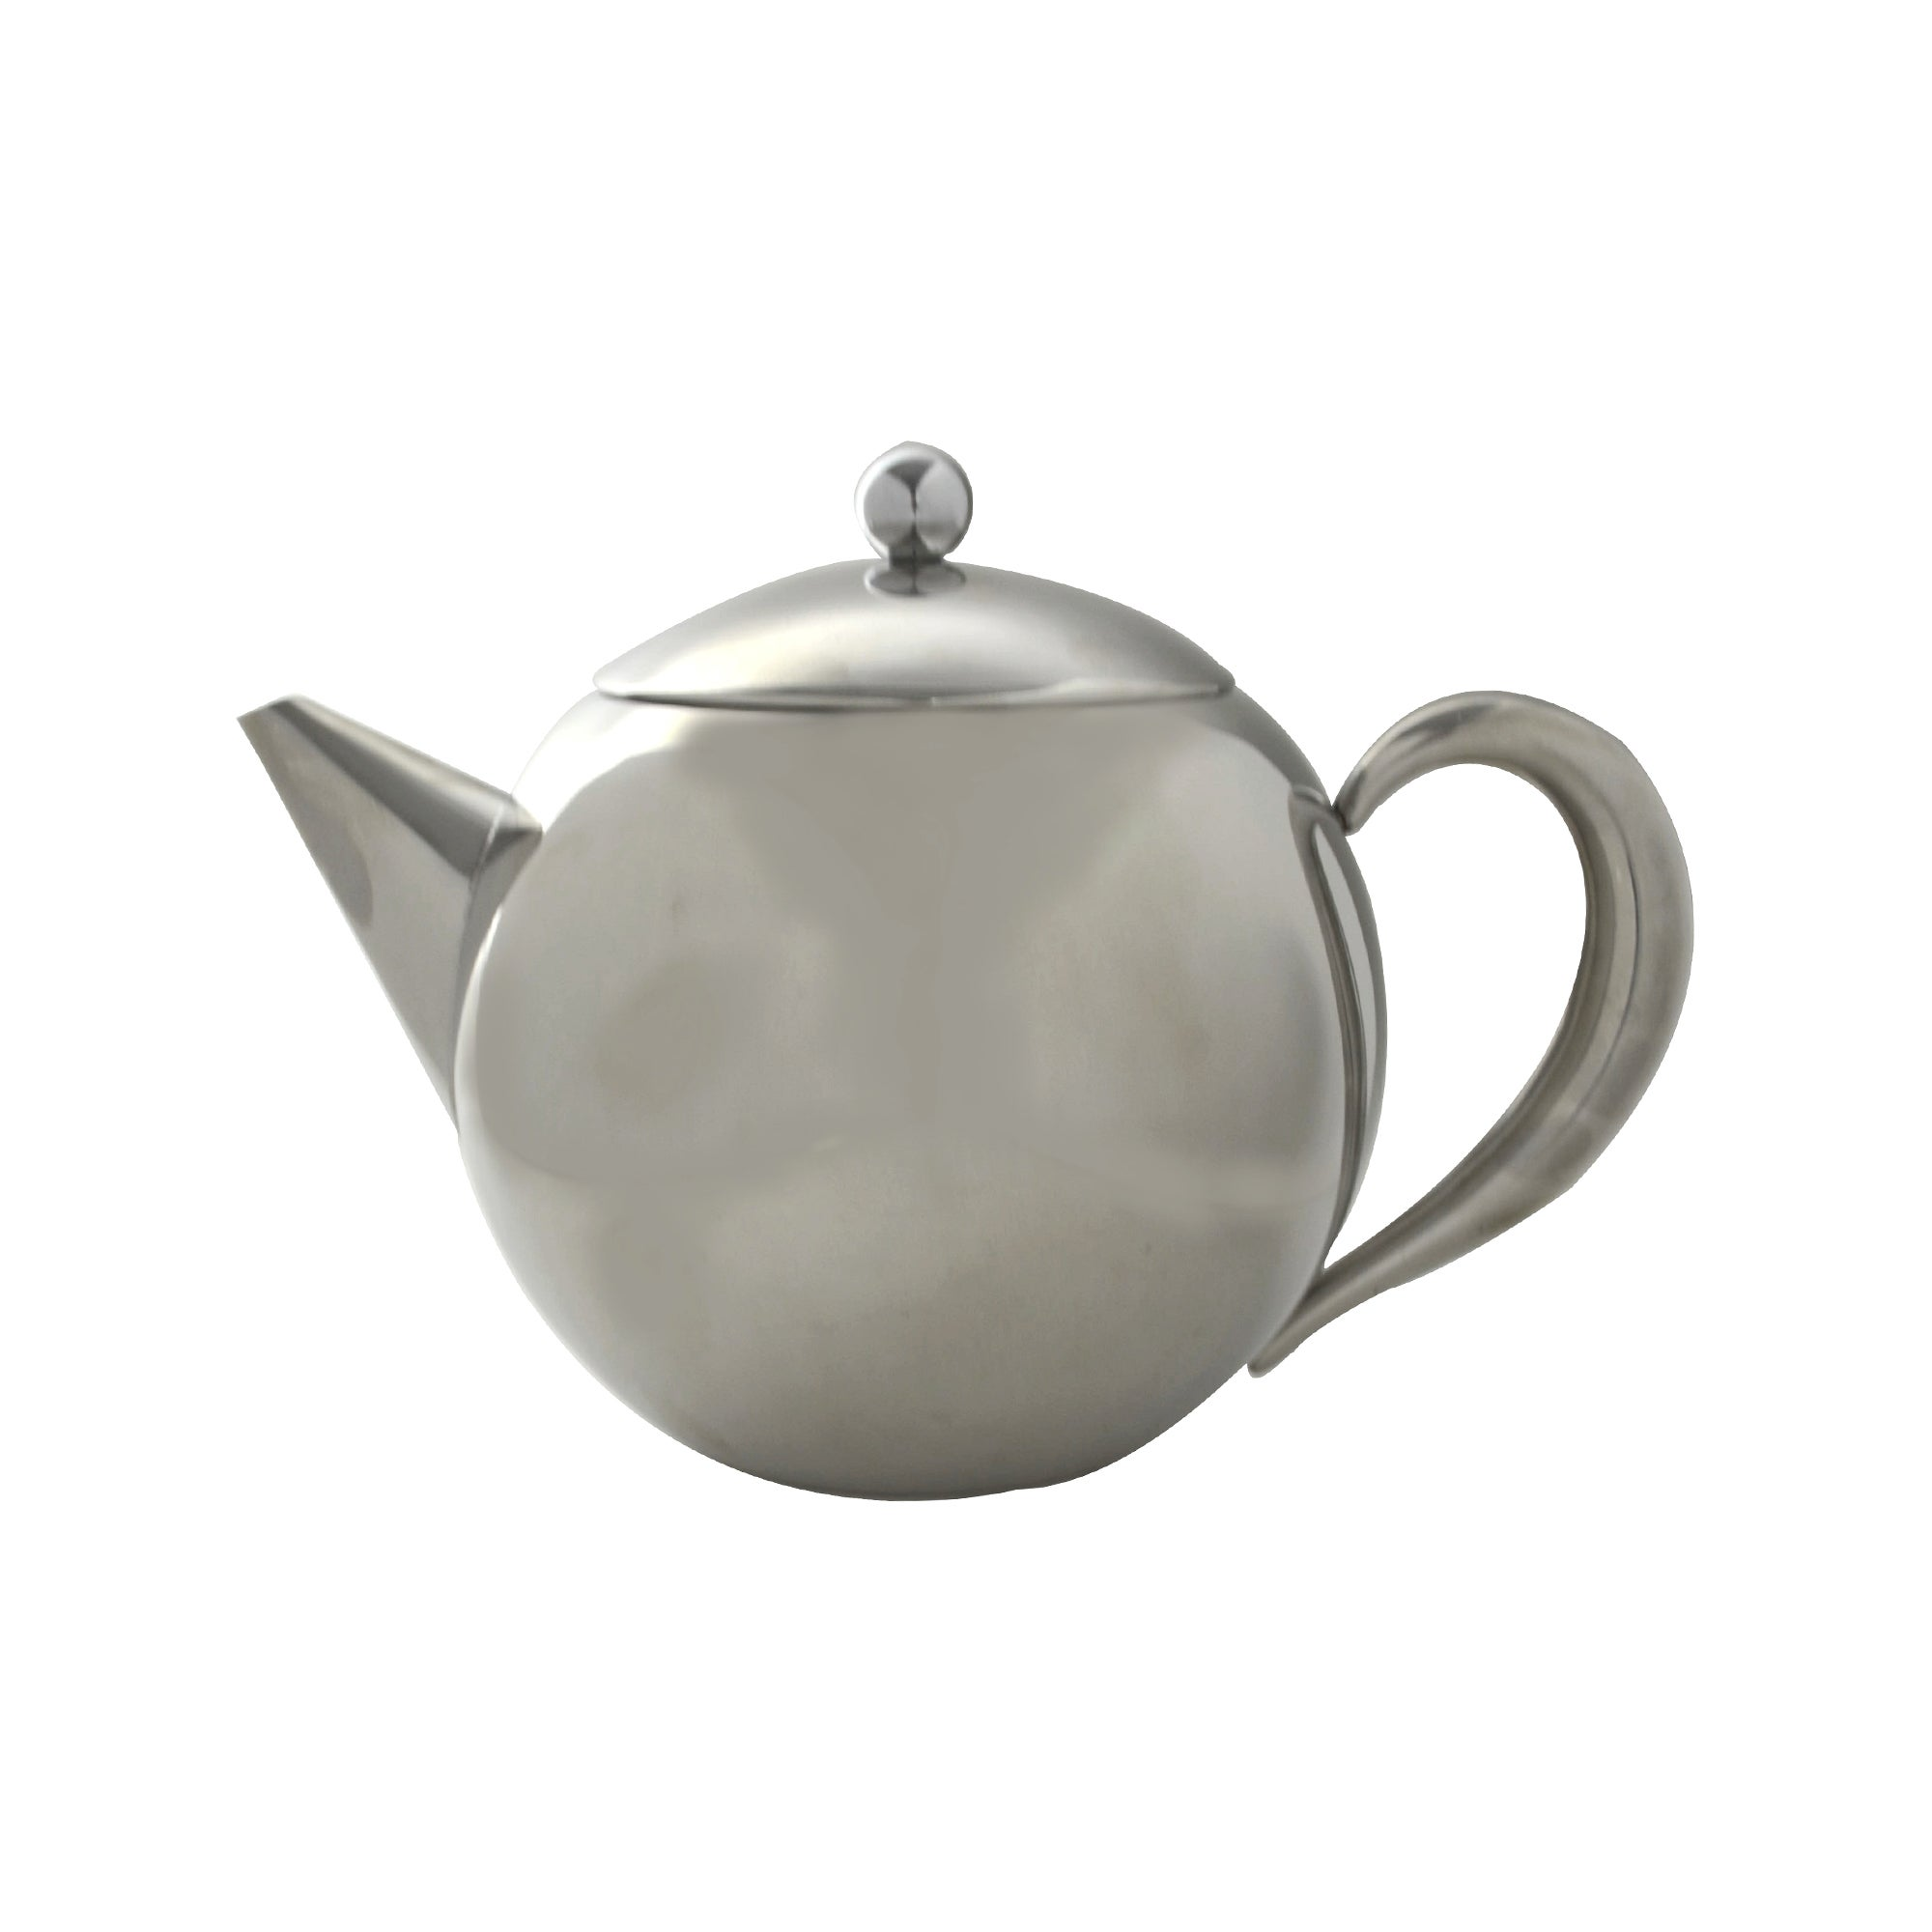 Image of 1.2 Litre Stainless Steel Teapot Silver